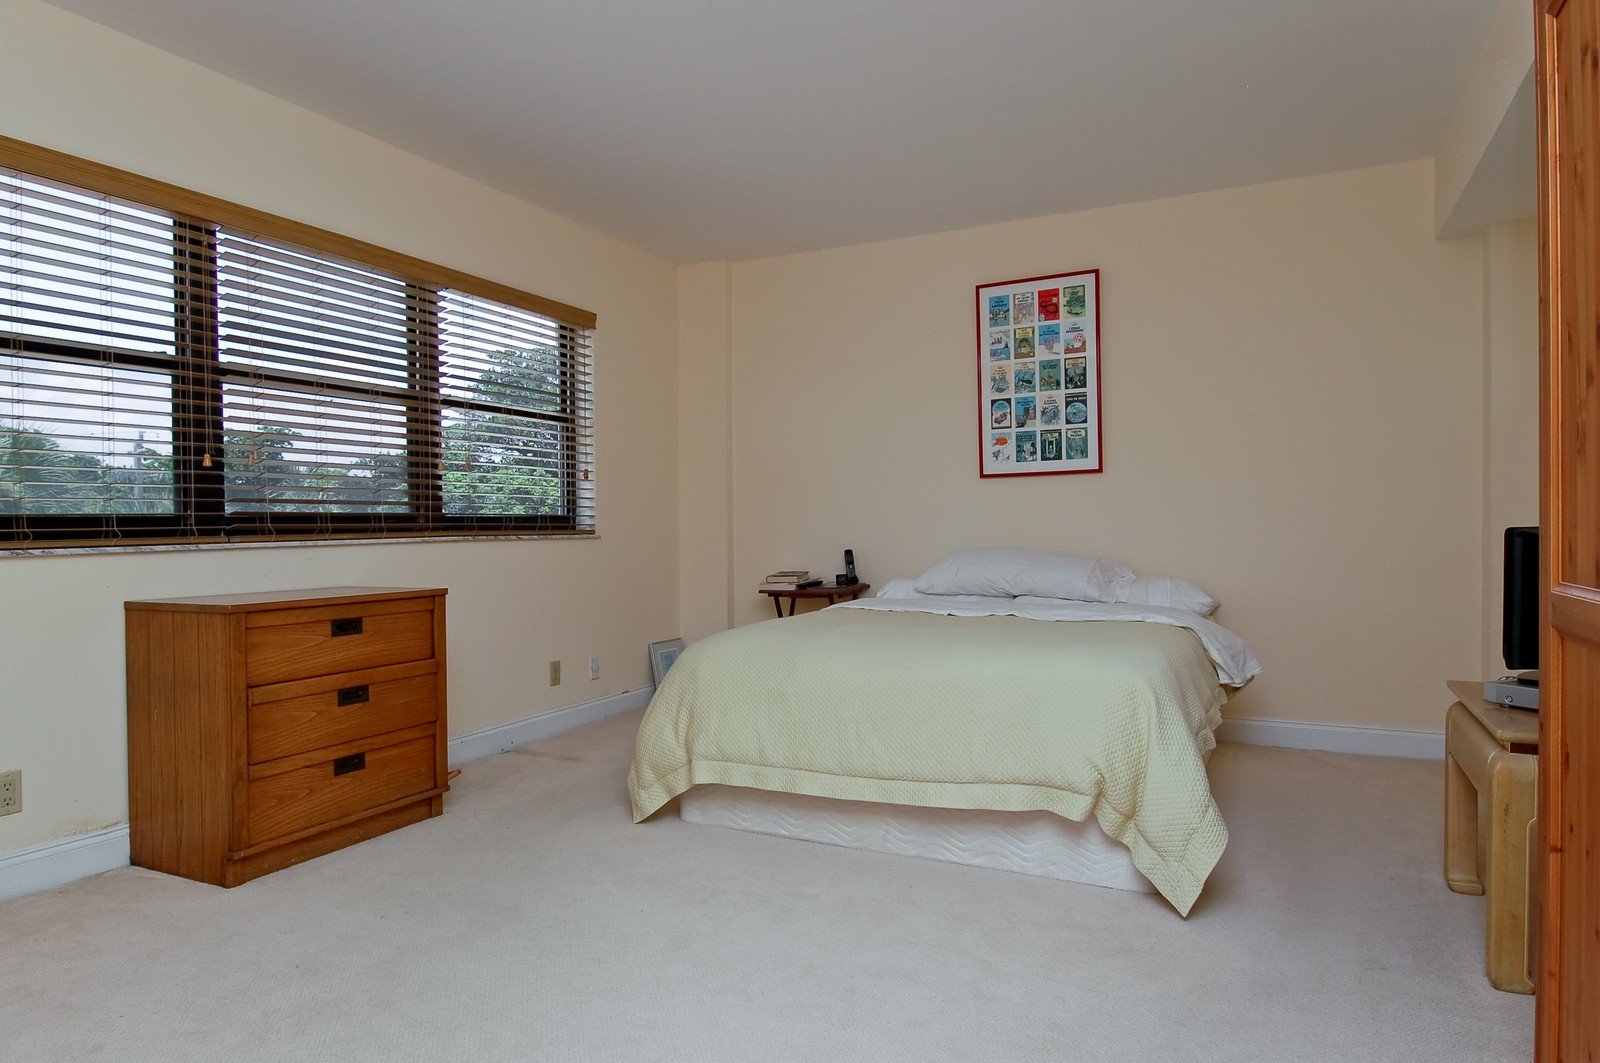 Real Estate Photography - 4605 S Ocean Blvd, Unit 3B, Highland Beach, FL, 33487 - Master Bedroom